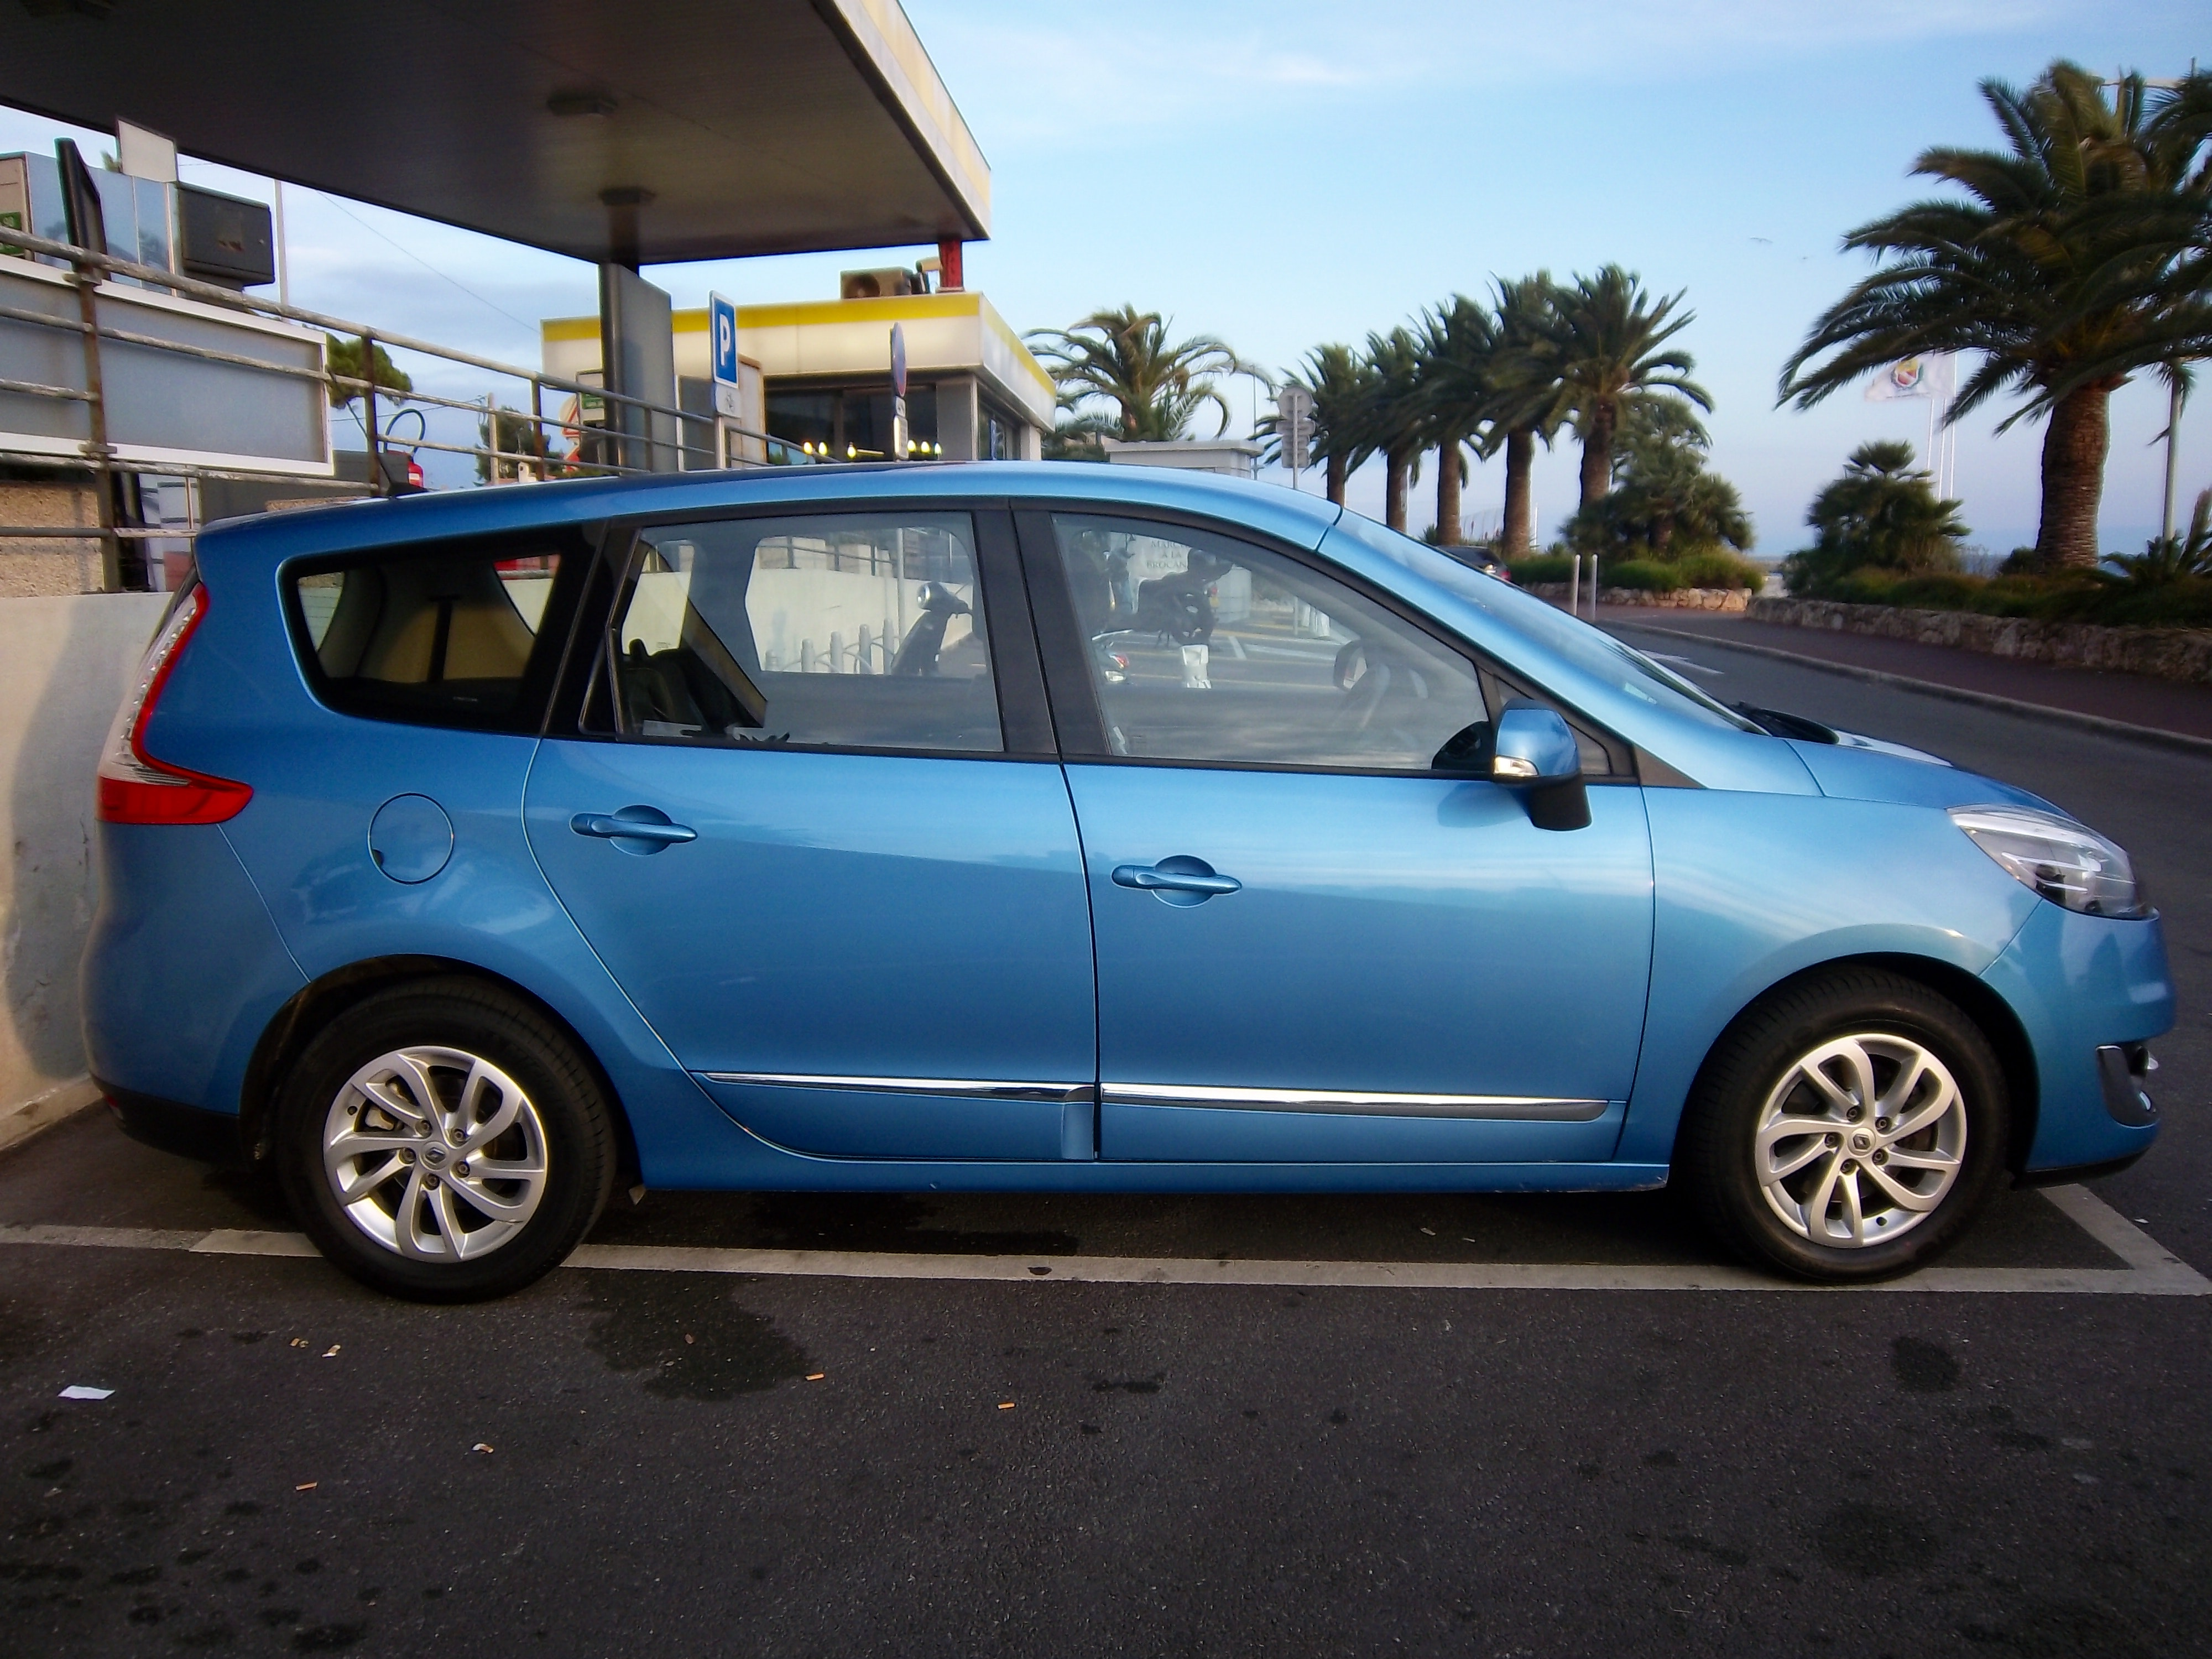 renault grand scenic, 2012, Diesel, 7 places